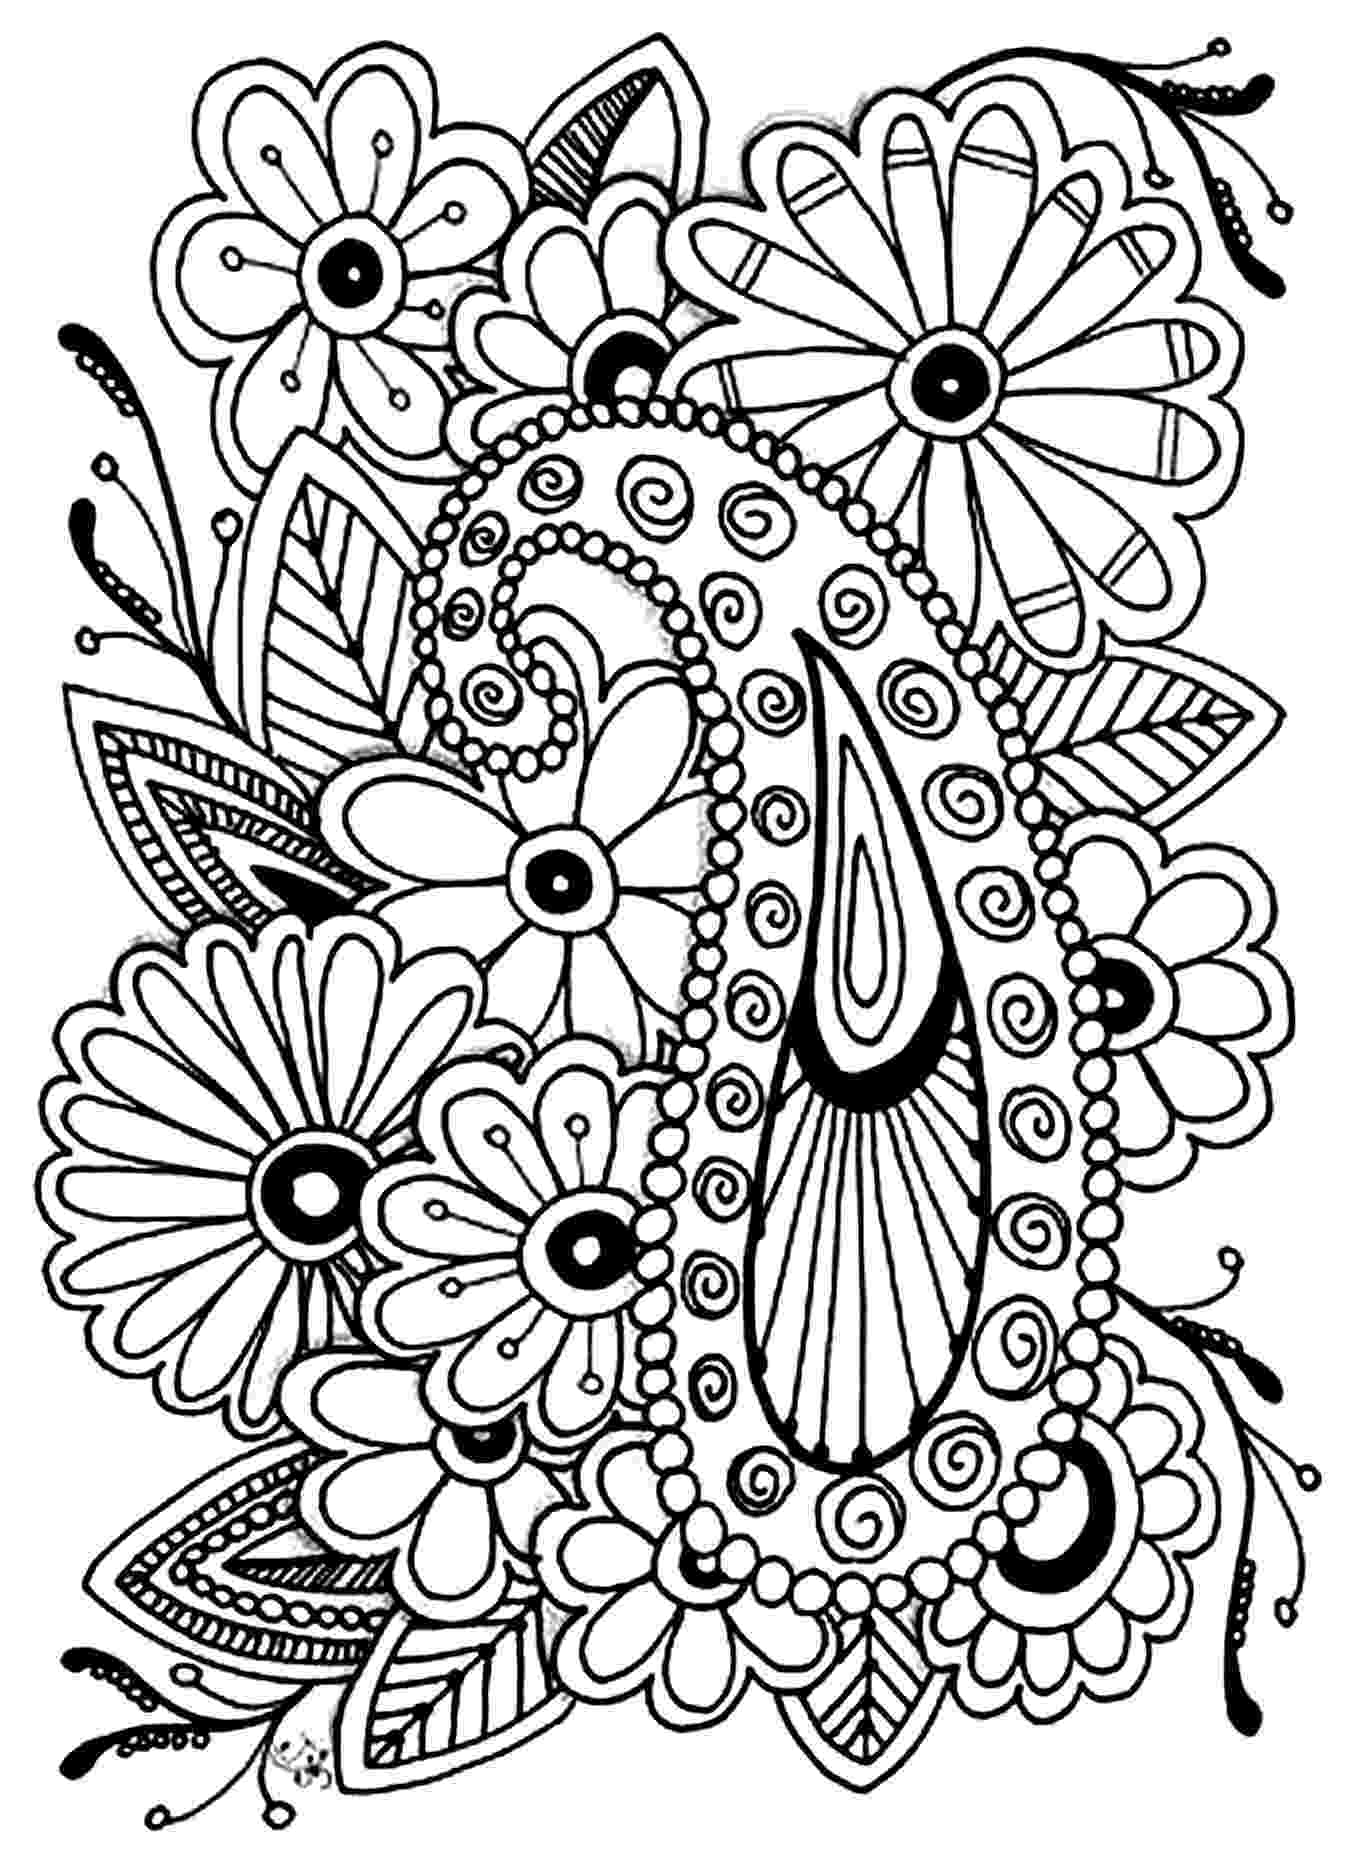 flower patterns coloring book free coloring pages round up for grown ups rachel teodoro flower patterns coloring book